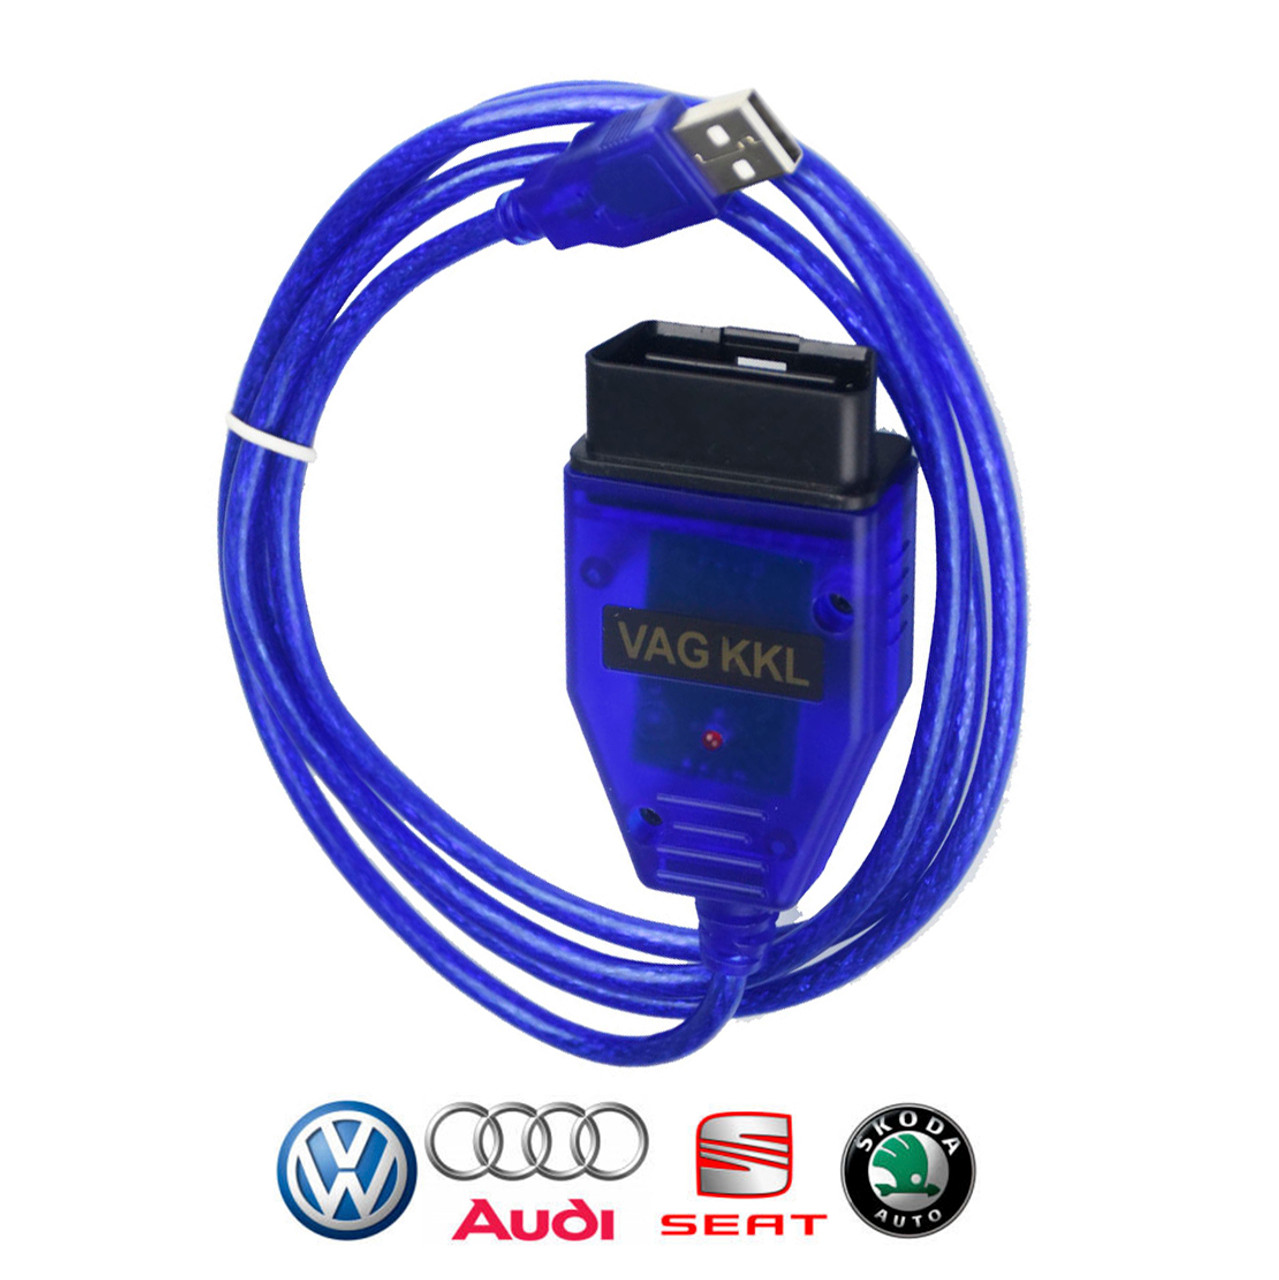 VAG 409 1 KKL OBD2 USB Cable with FTDI FT232RL Chip for VW Audi VCDS Lite